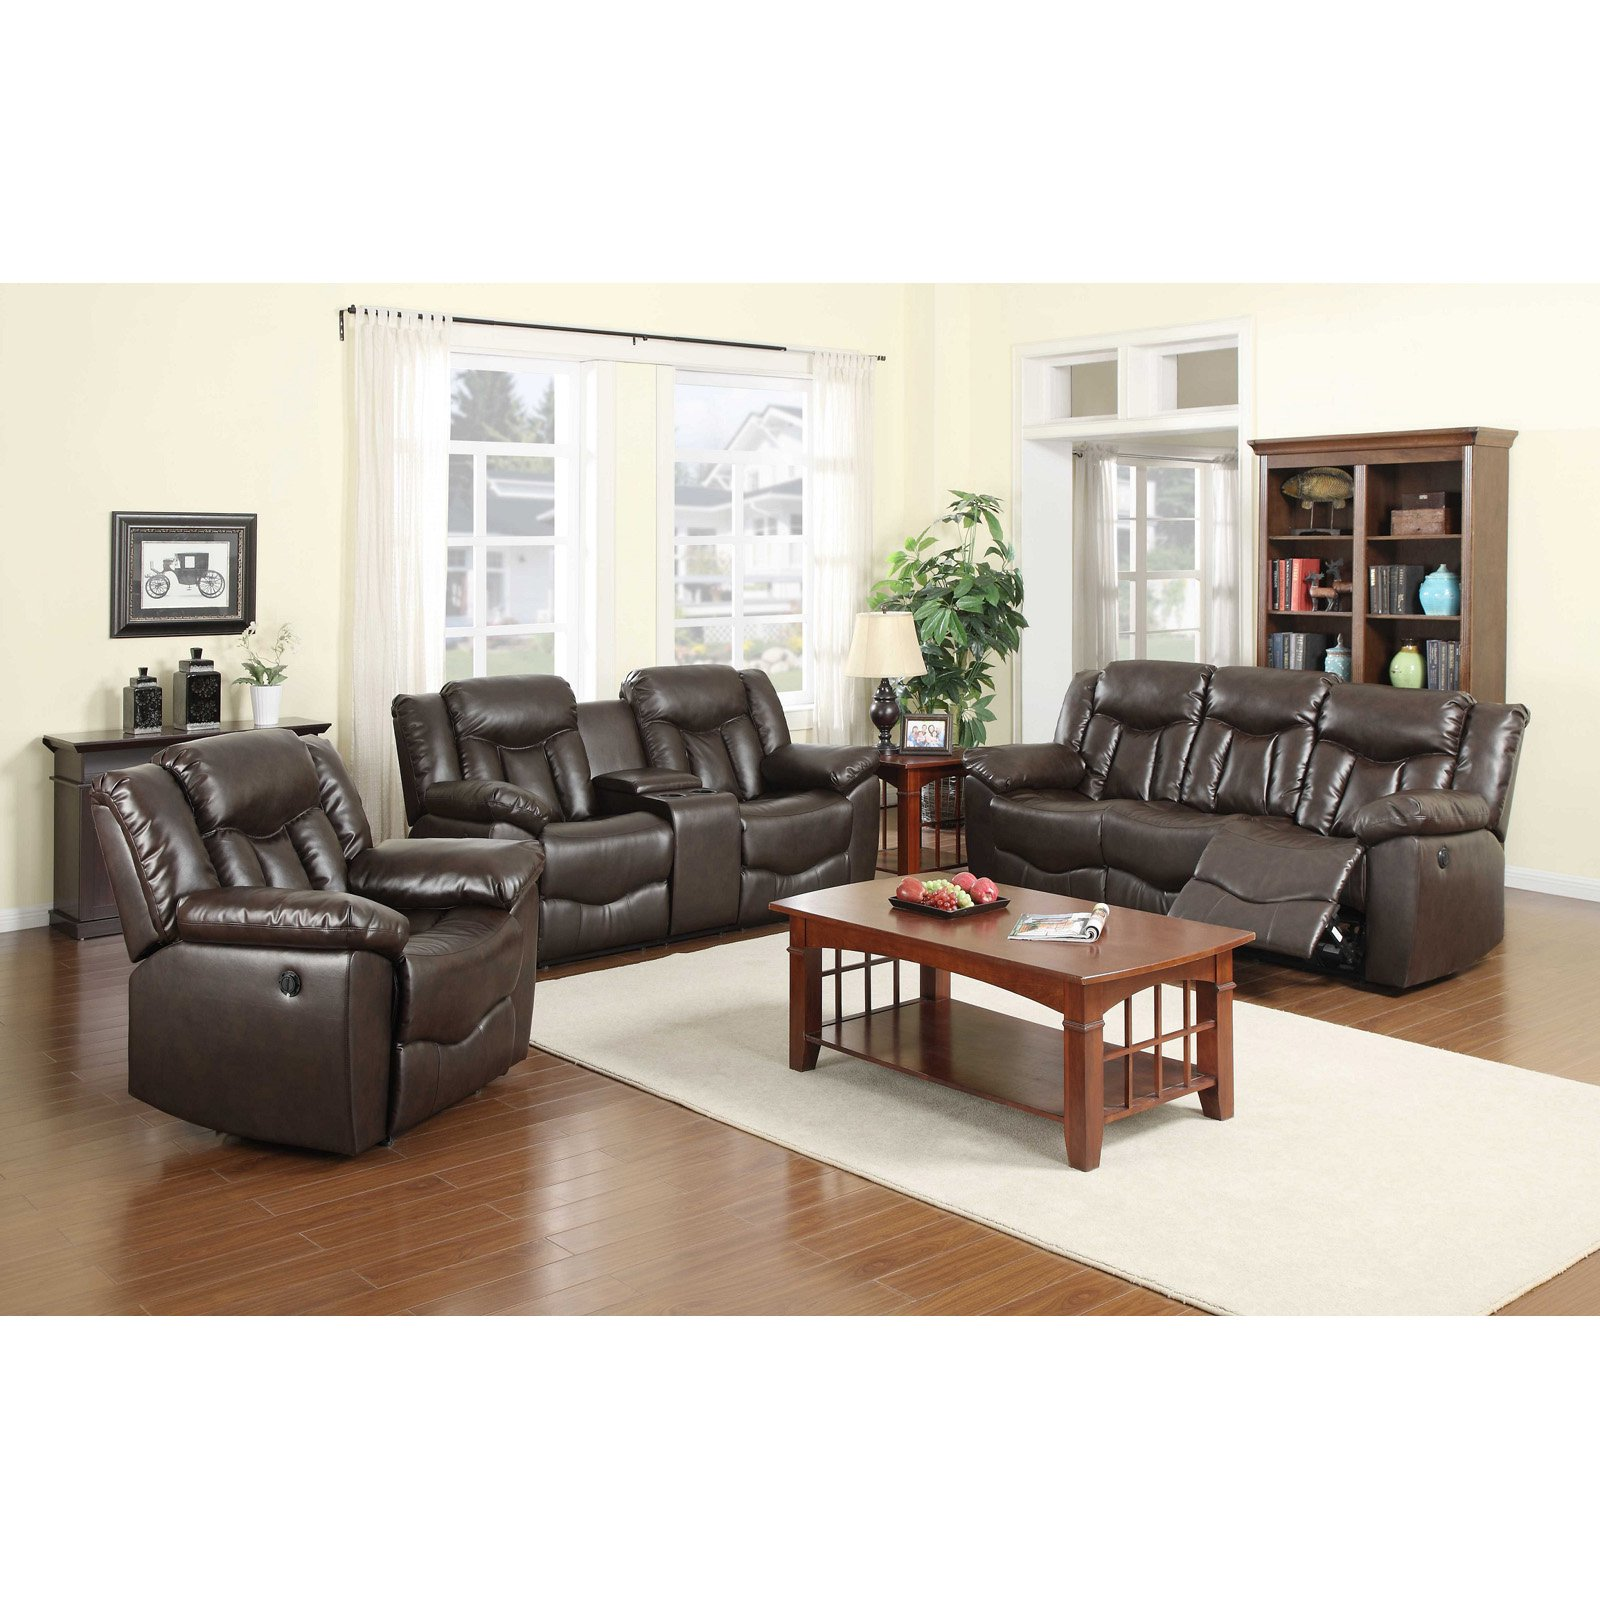 NH Designs 71006 Bonded Leather Sofa Recliner and Loveseat Set